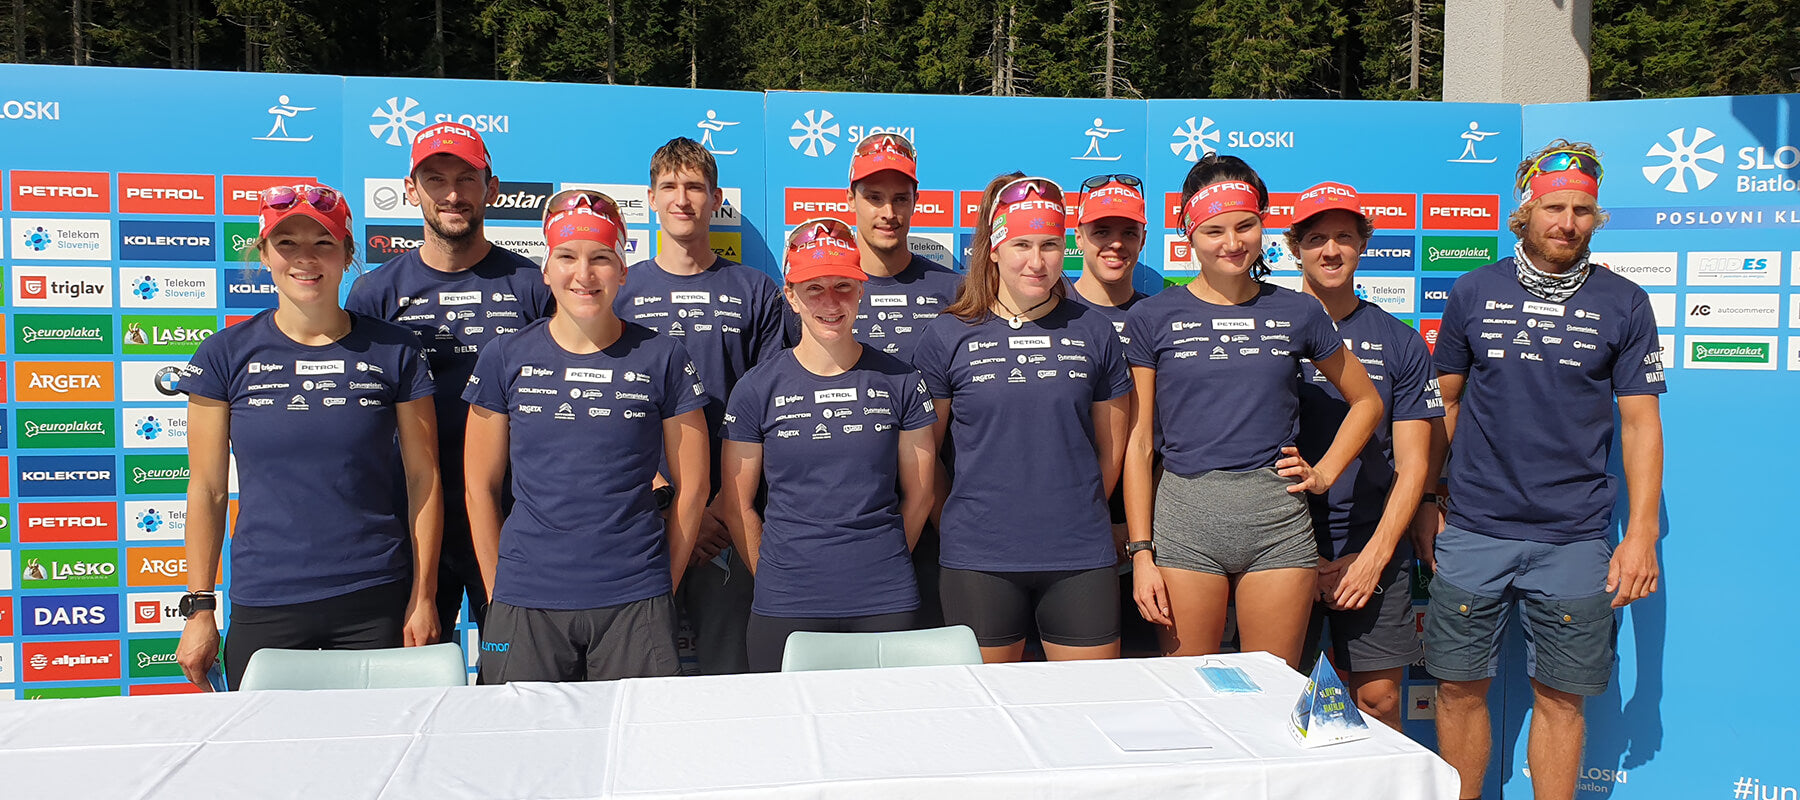 Halti is the official supplier of Slovenian Biathlon Team